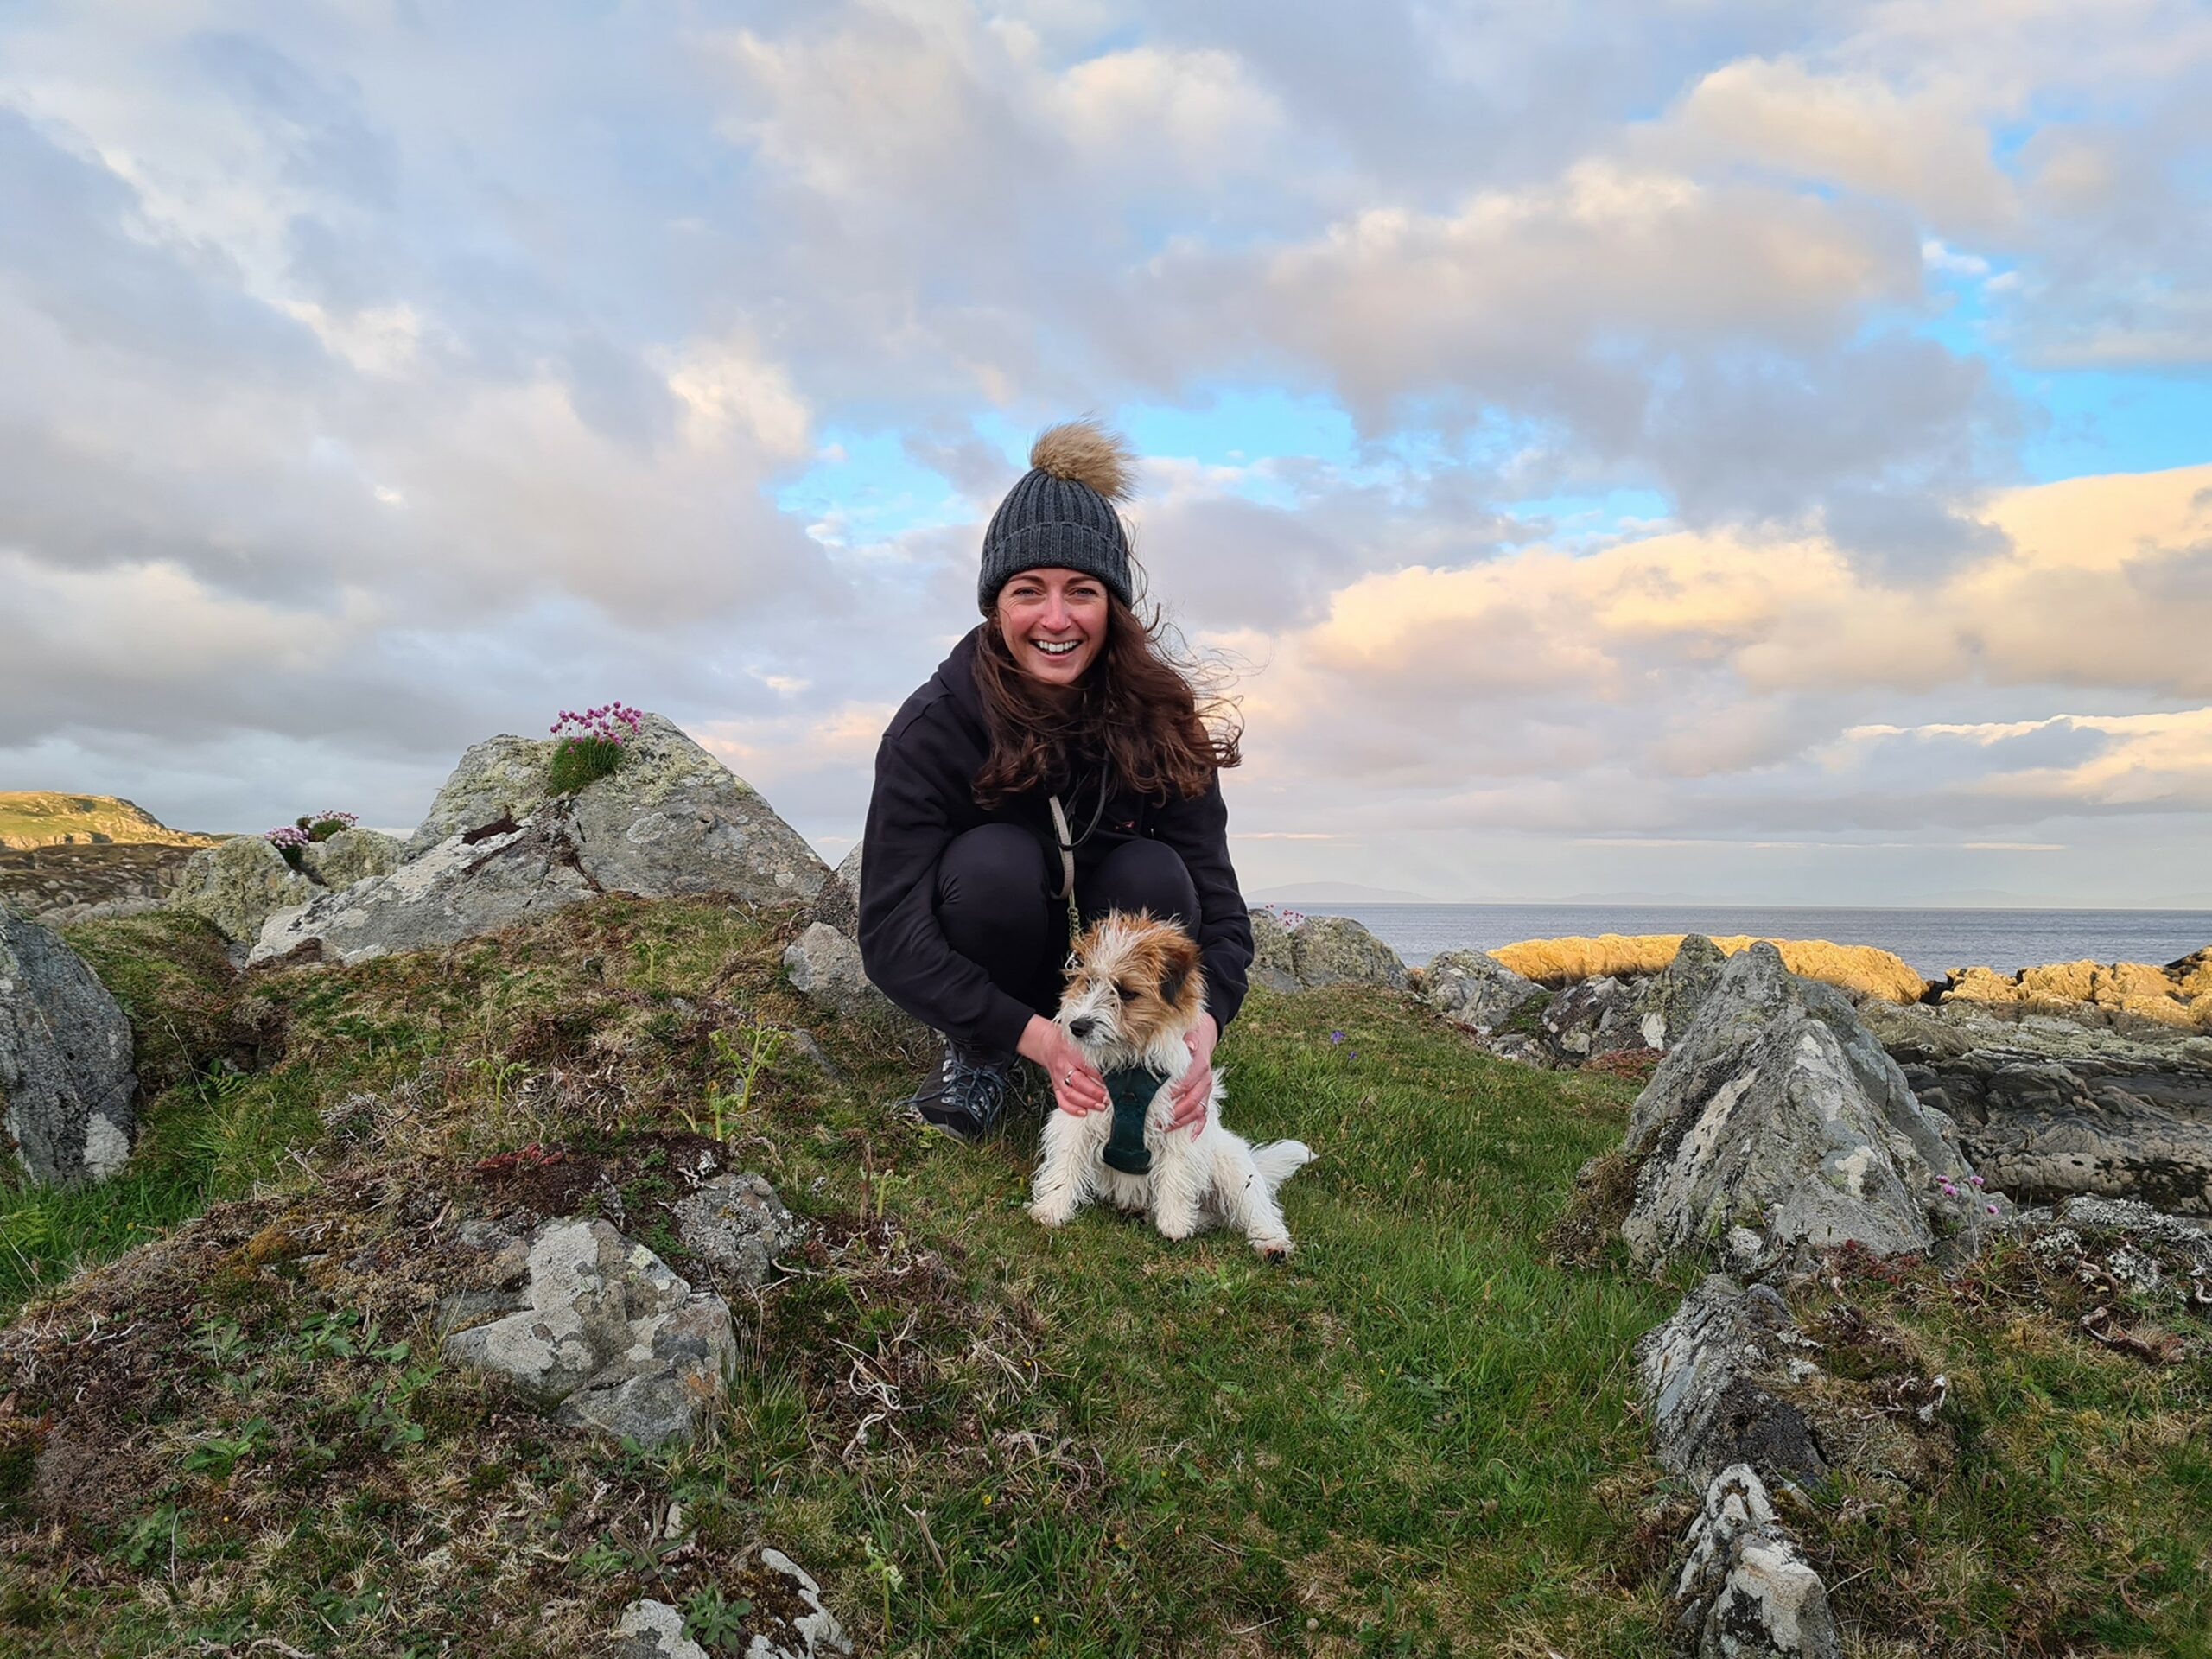 Staycation with Aegon's Georgina Laird: Scottish beaches, solar panels and switching off